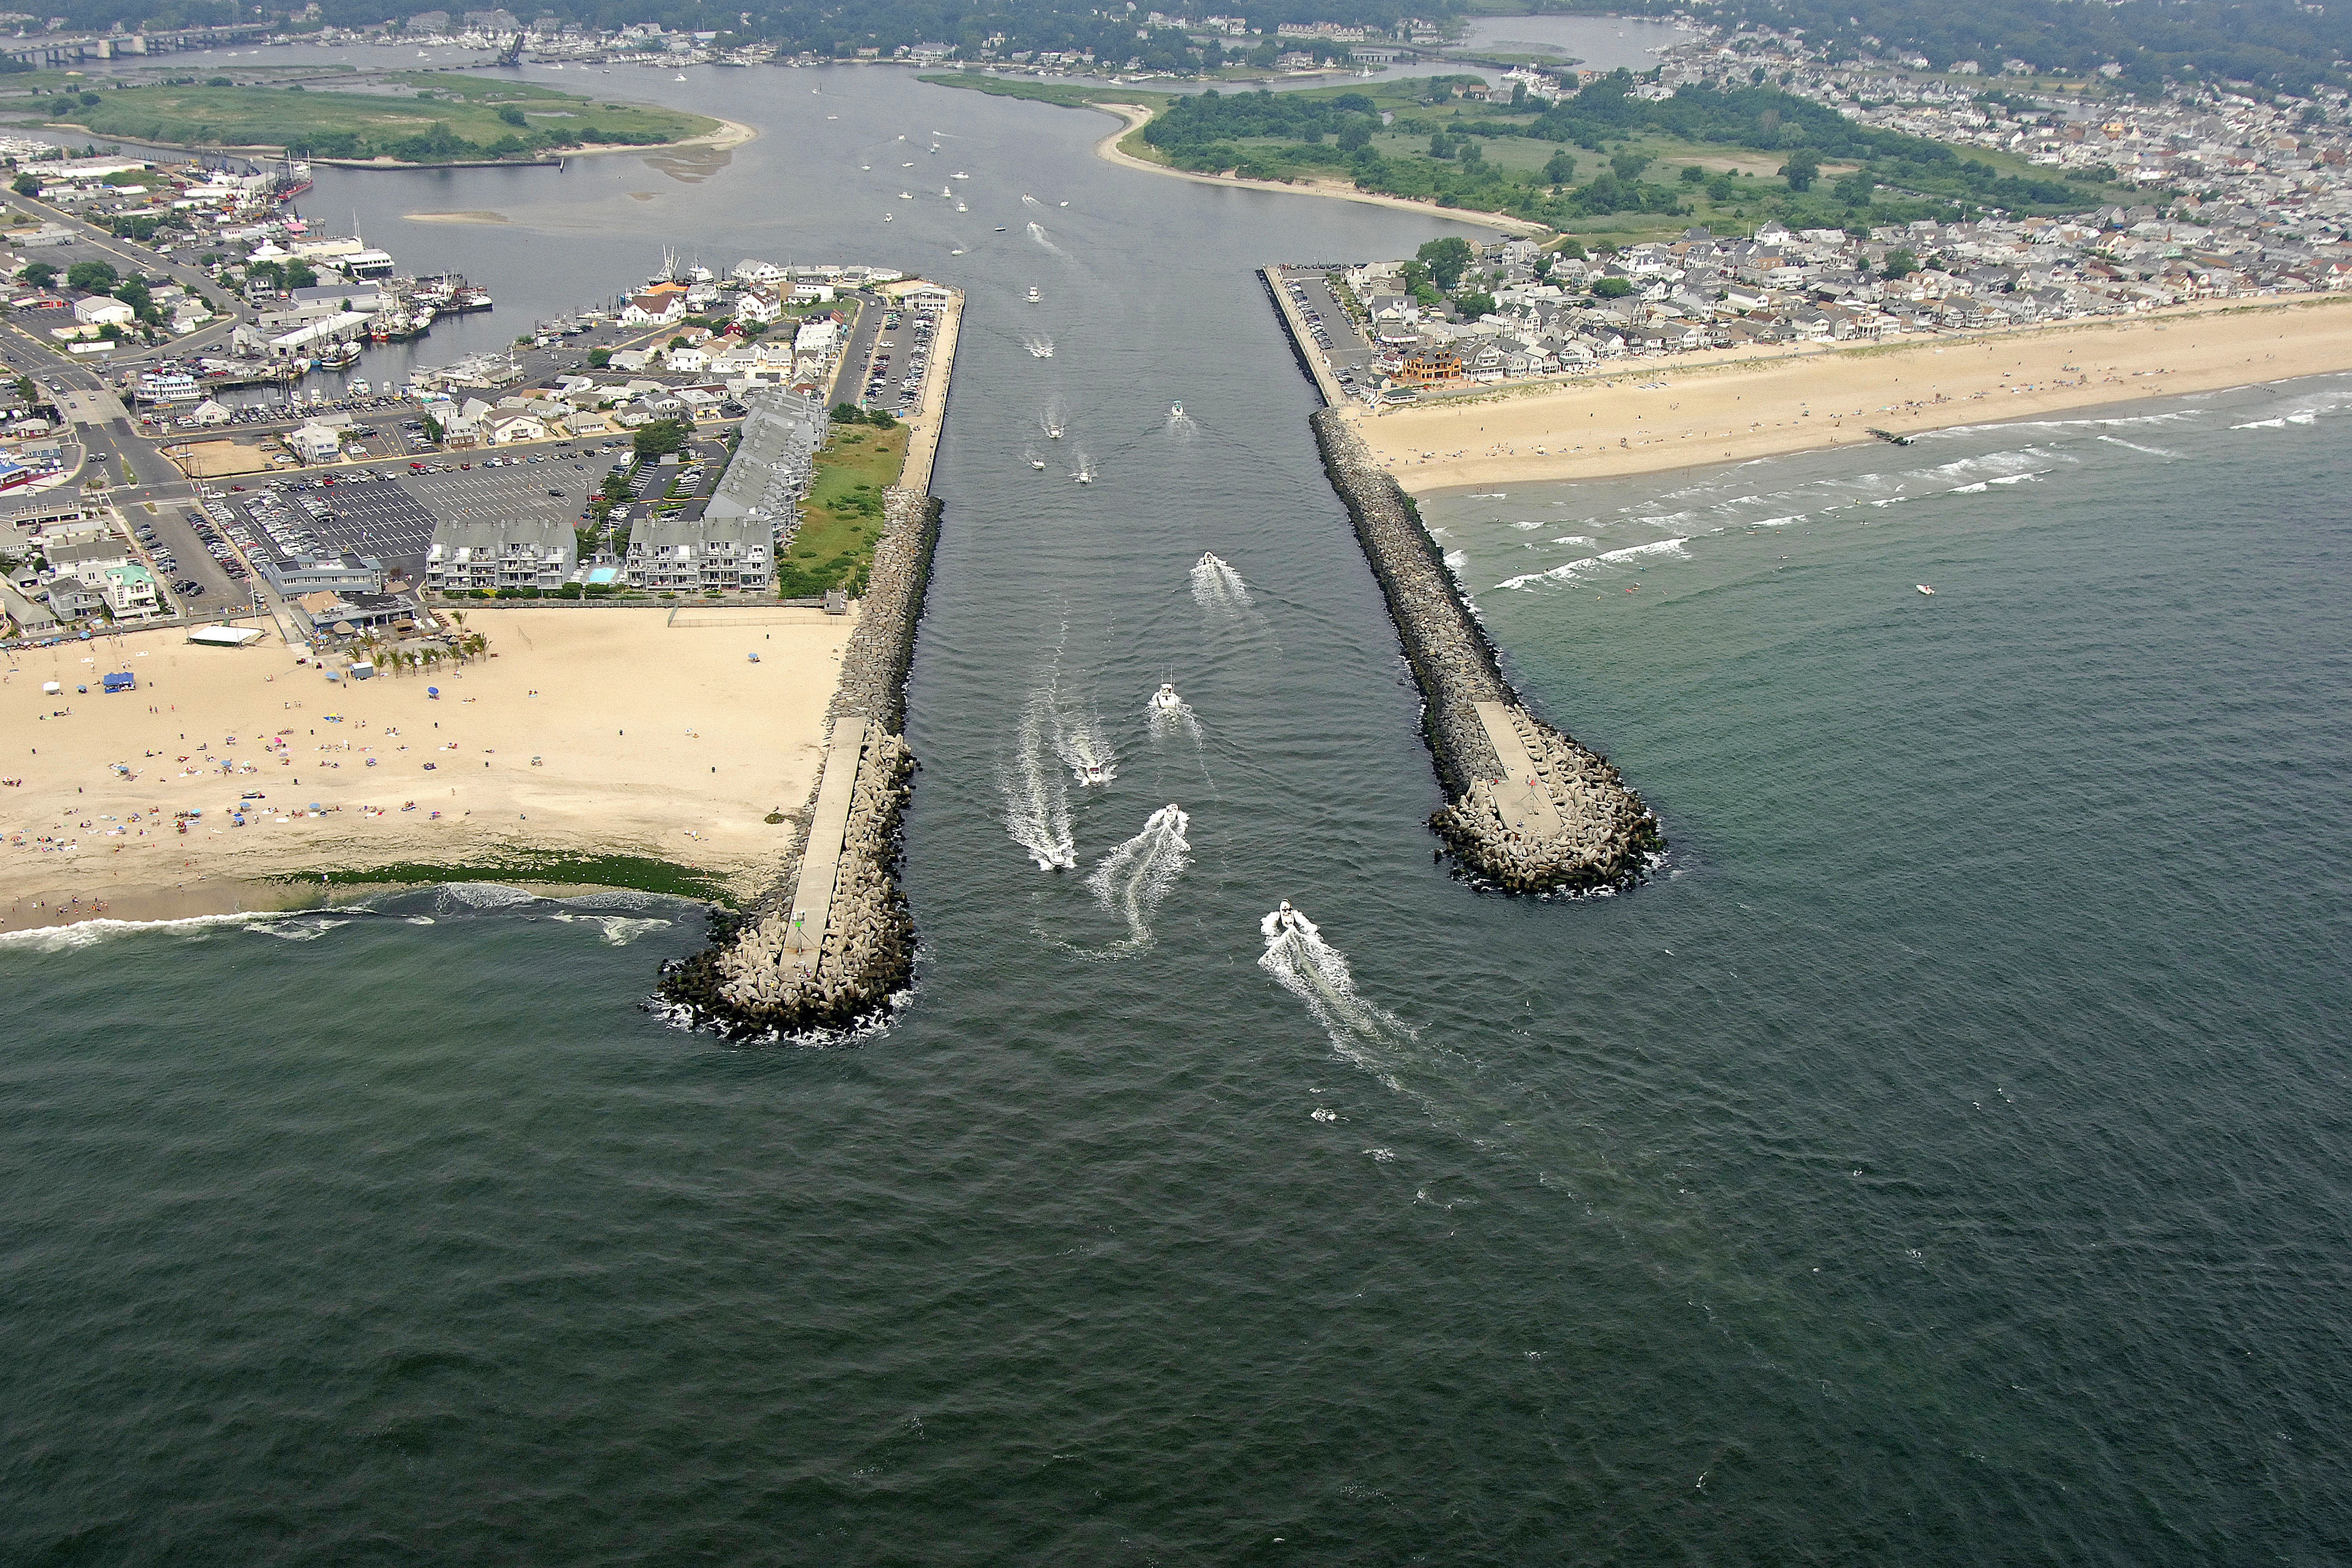 Manasquan river inlet in manasquan nj united states inlet manasquan river inlet manasquan river inlet nvjuhfo Image collections